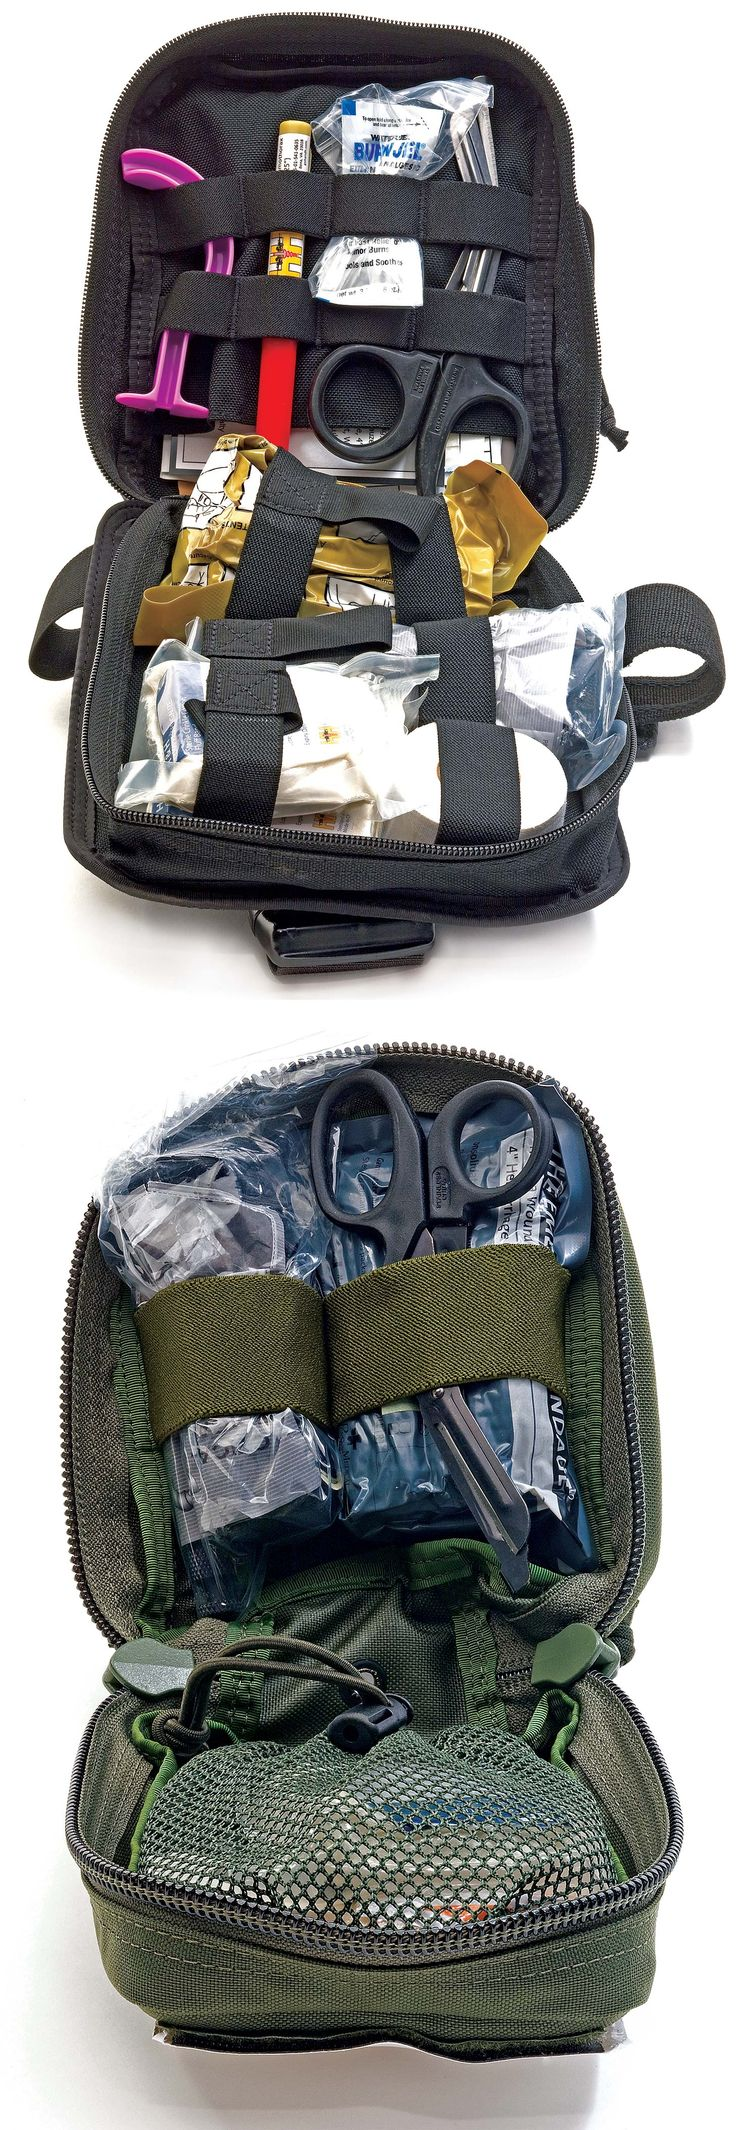 Chinook Medical Gear For Cops | American COP Tech | Click here for info: http://americancopmagazine.com/chinook-medical-gear-for-cops/ | #american #cop #medical #kit #survival #safety